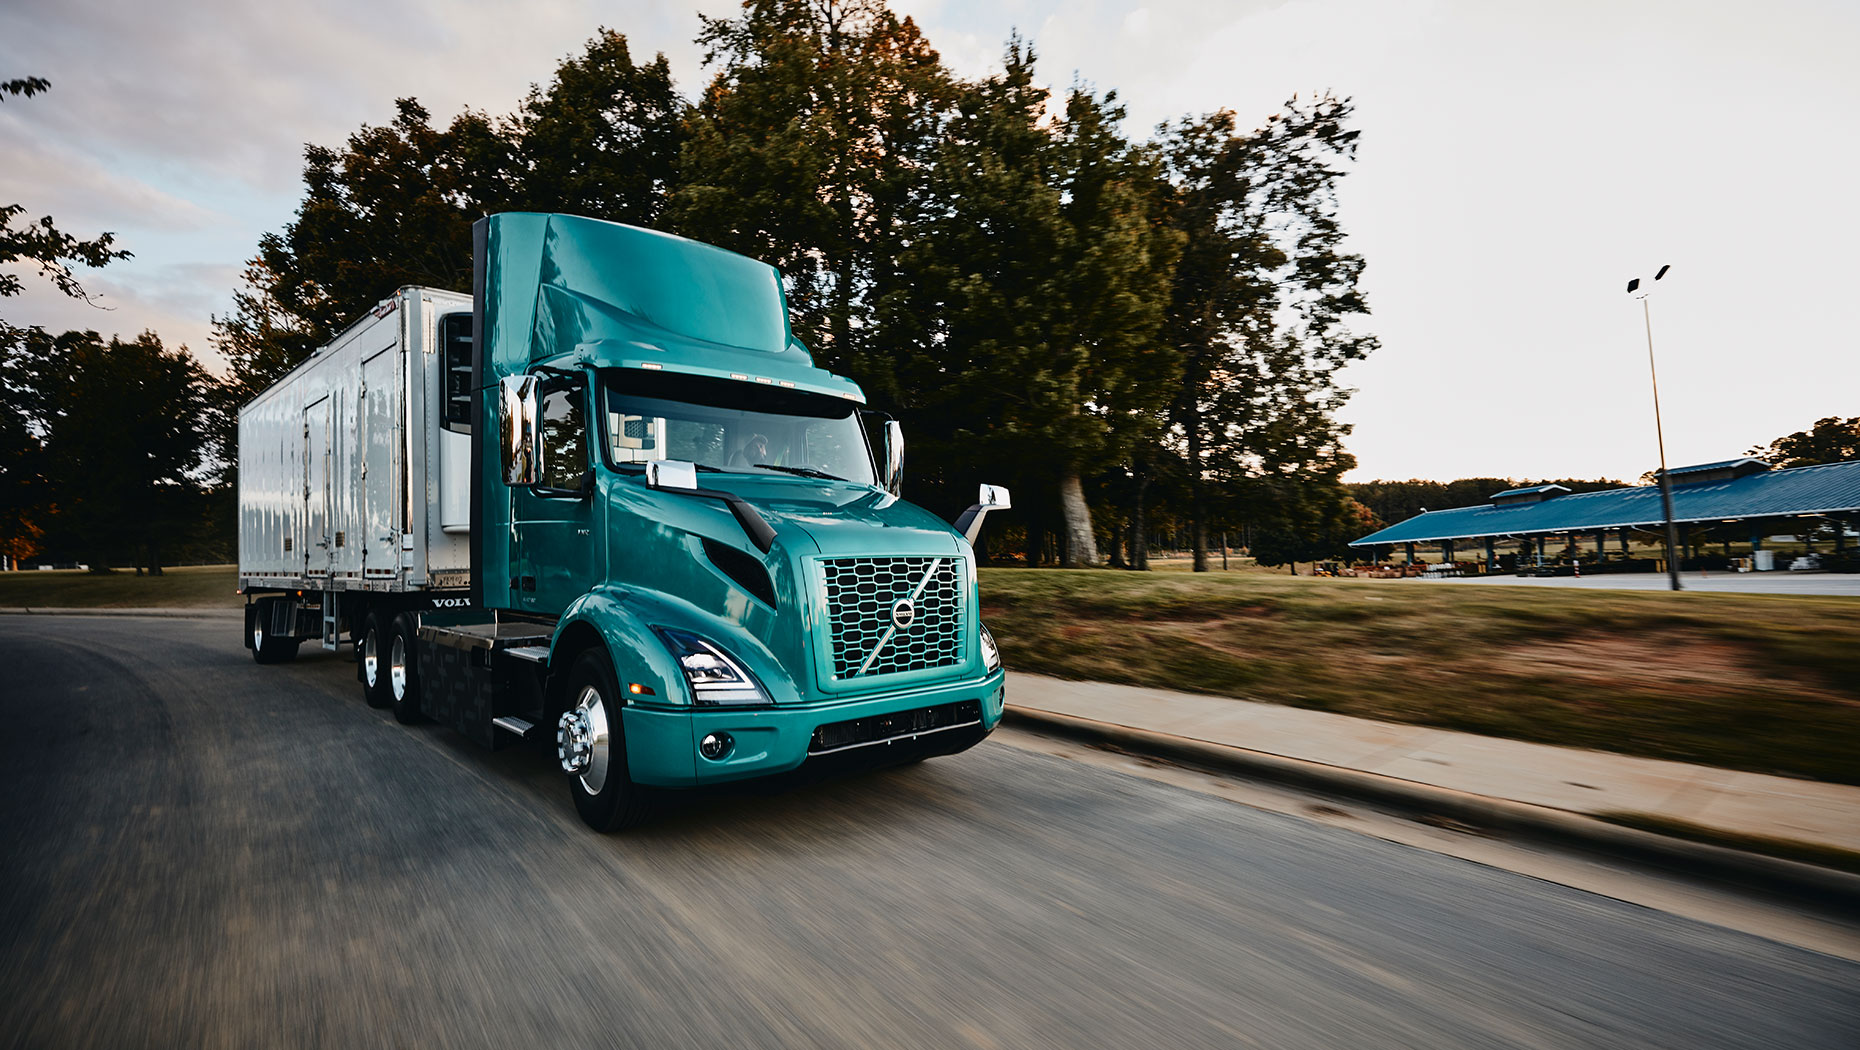 Volvo Trucks Leads Electrification of North American Trucking Industry with Commercialization of Volvo VNR Electric Model